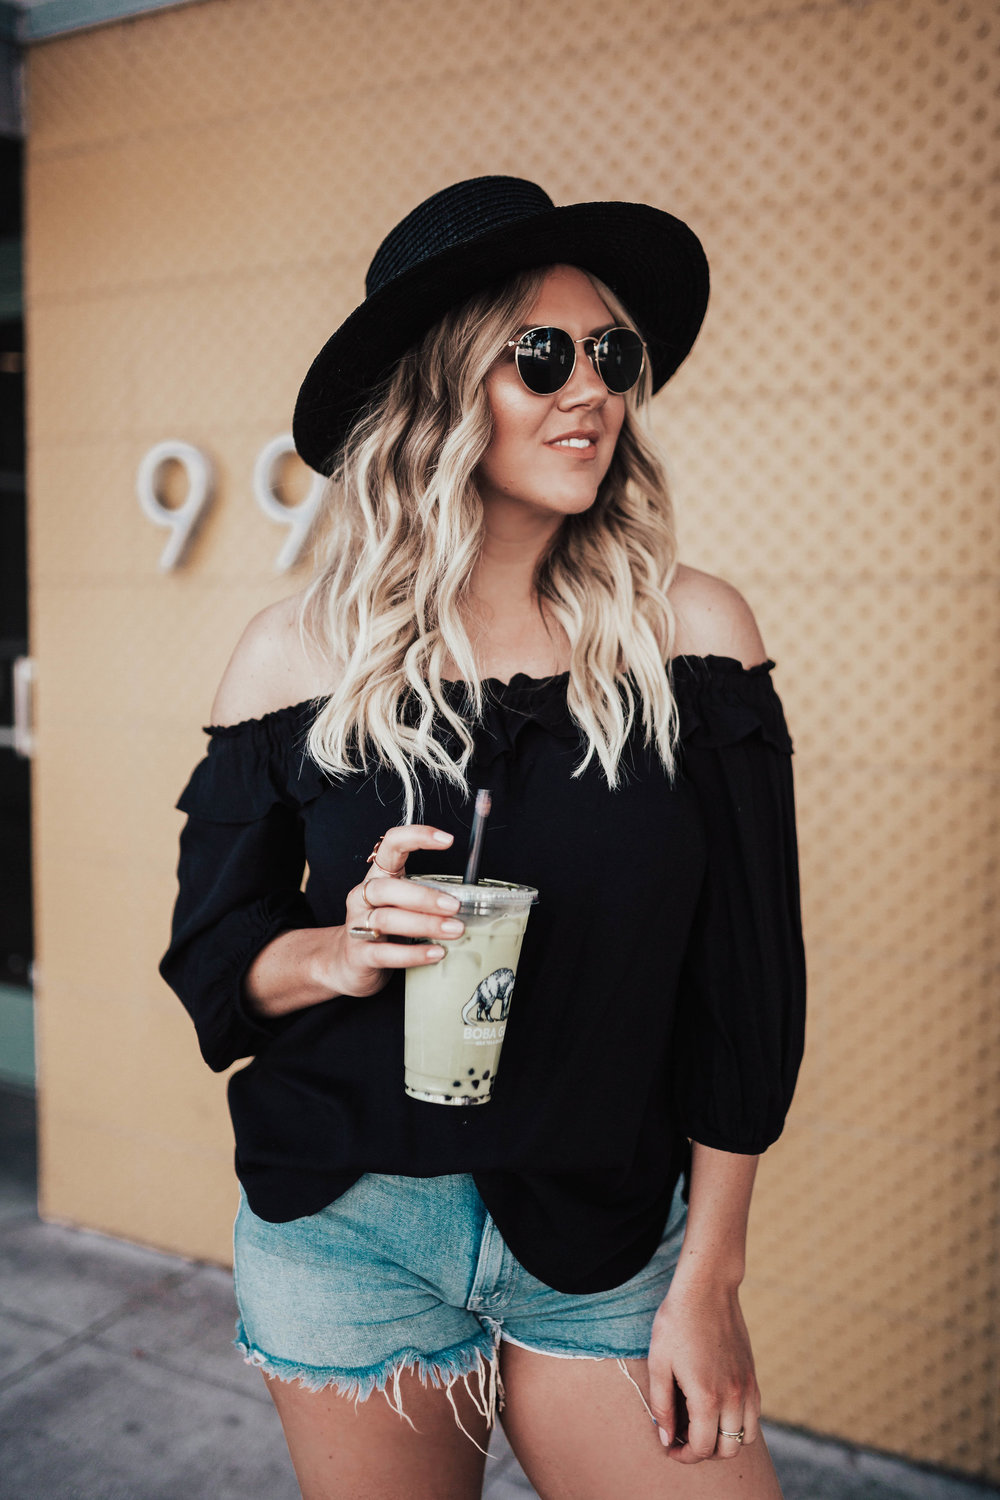 via Thea off shoulder top, black hat, boba guys